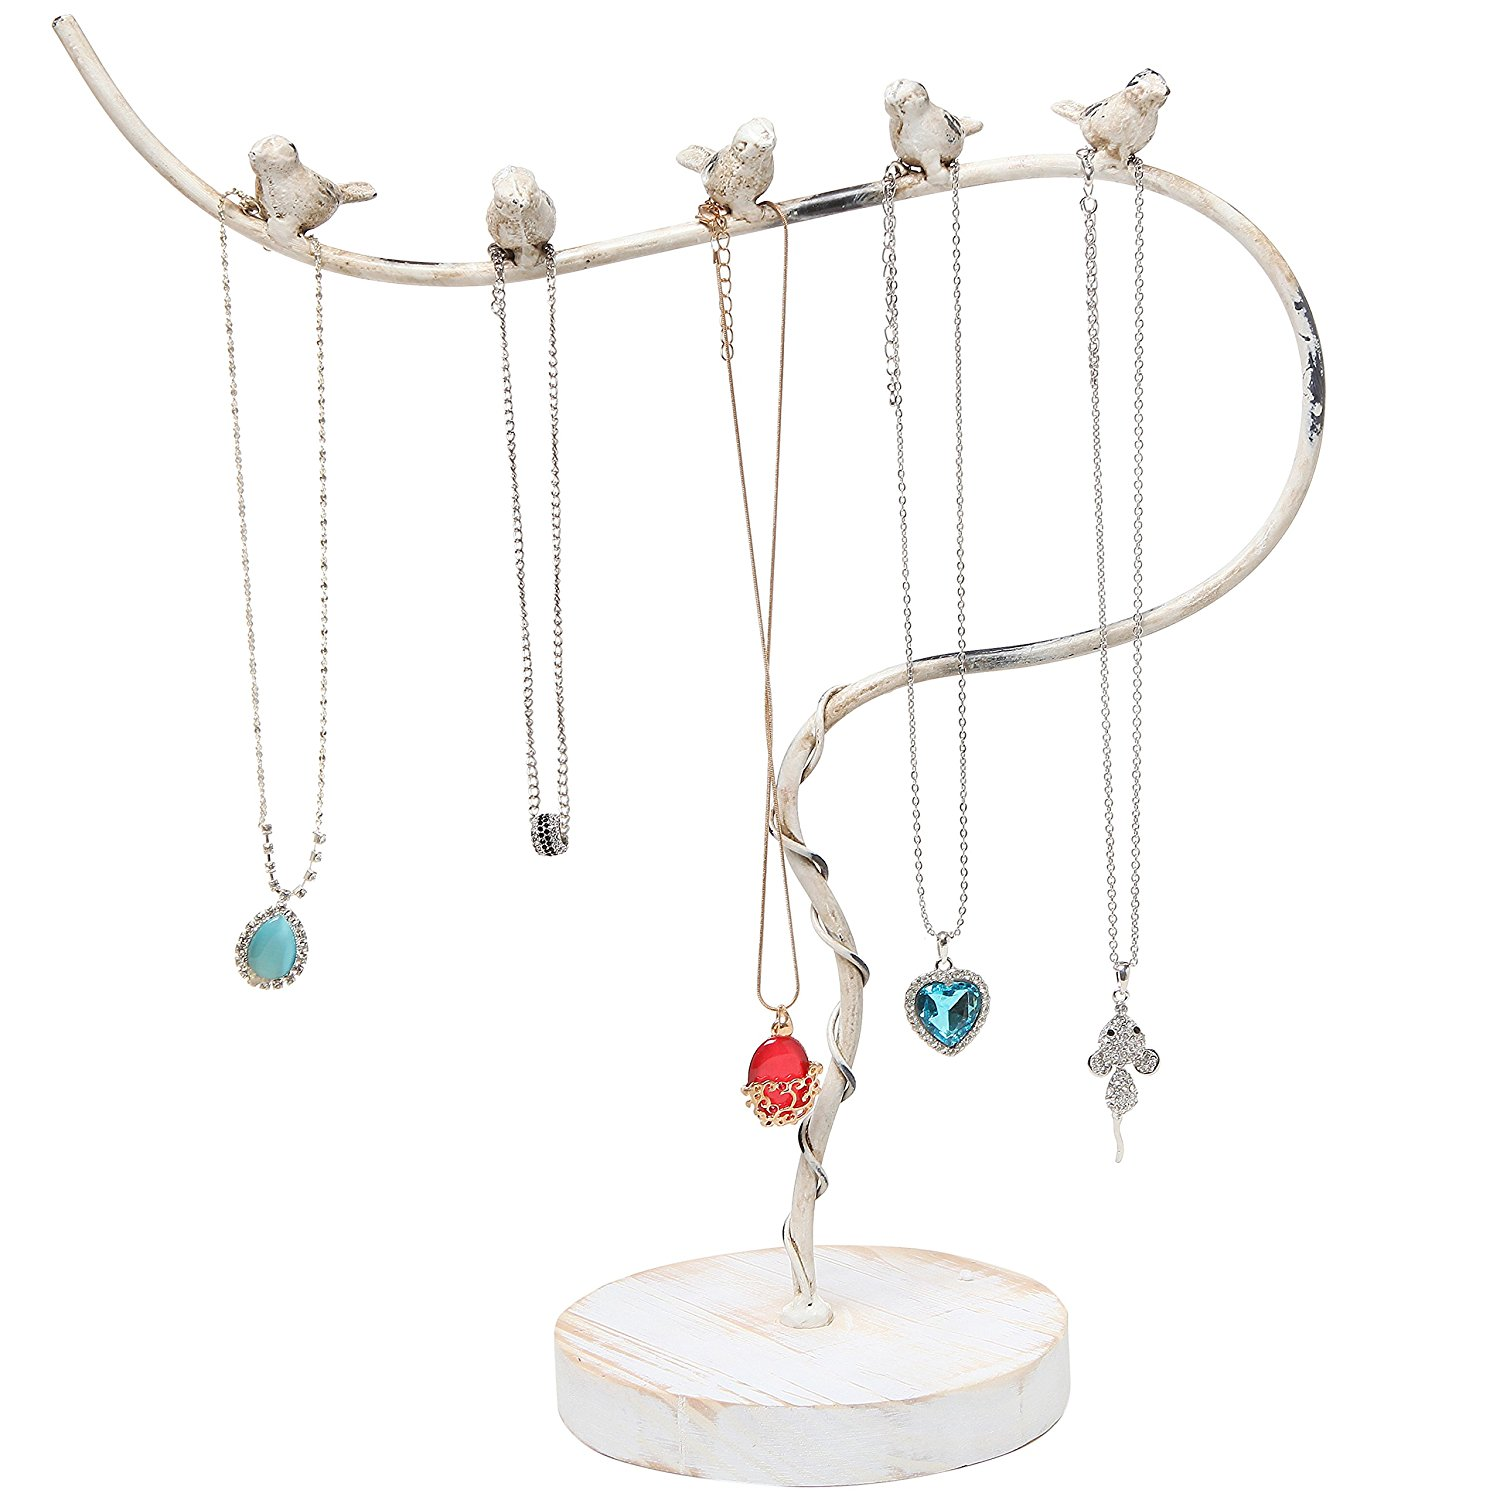 Vintage Style White Washed Metal Bird Design Necklace Jewelry Tree Rack with Wood Base